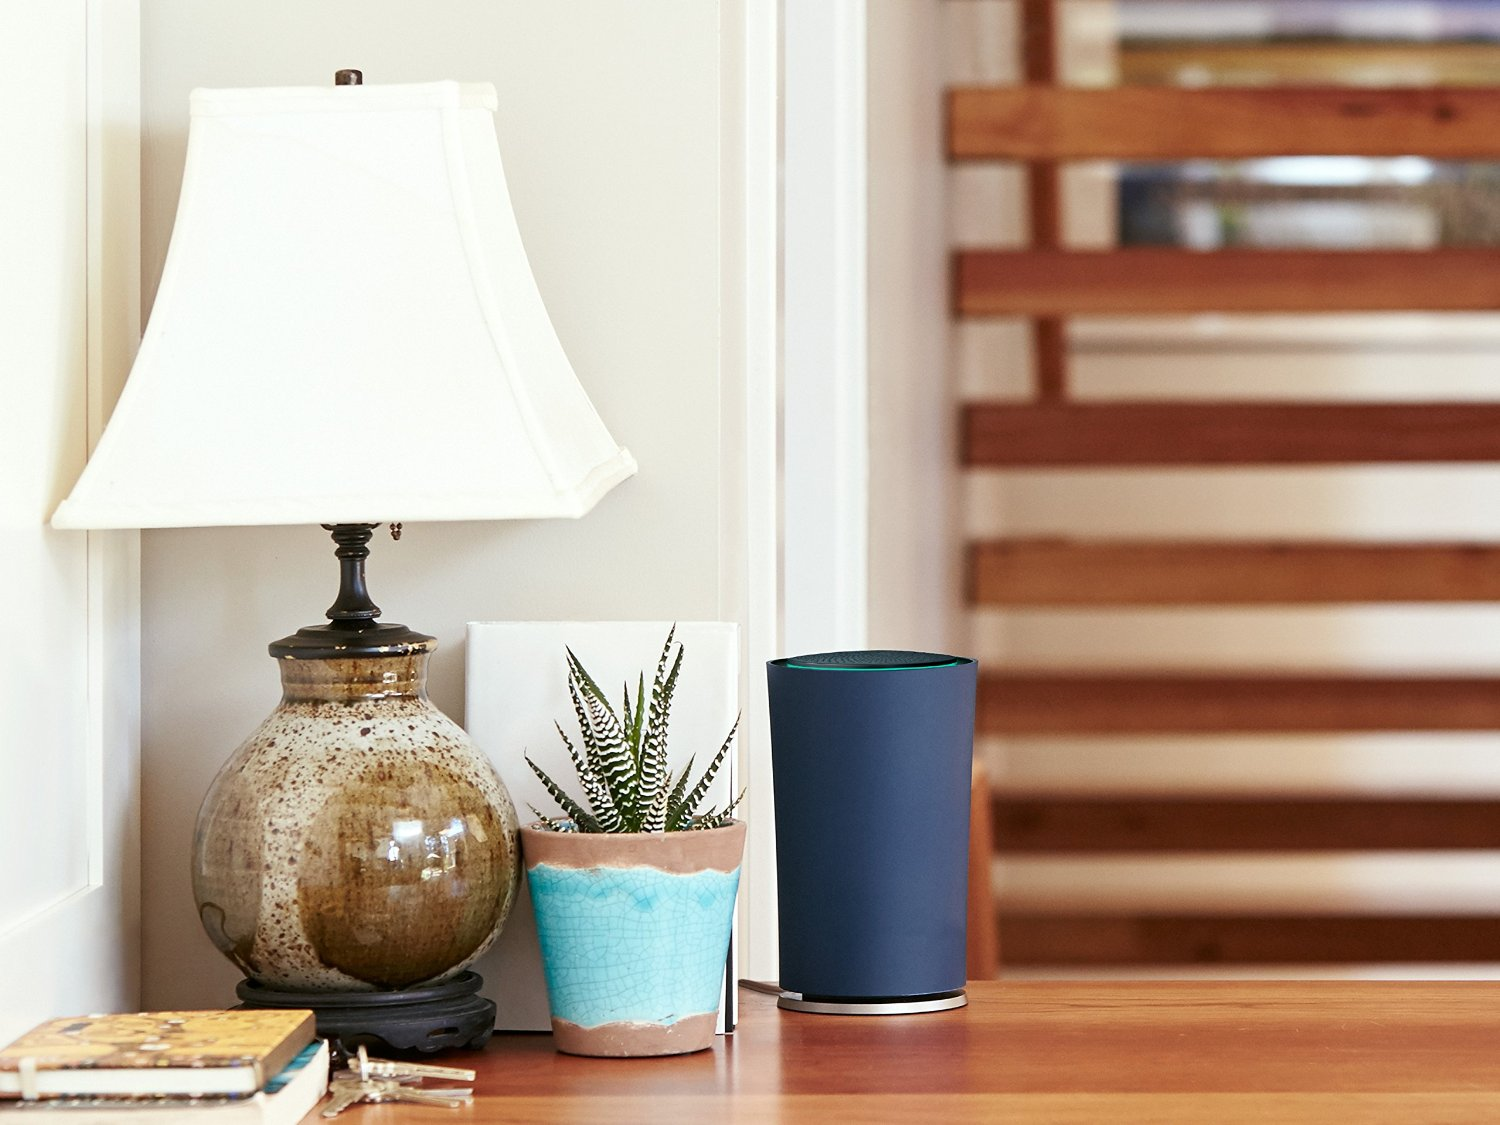 OnHub Wifi Router